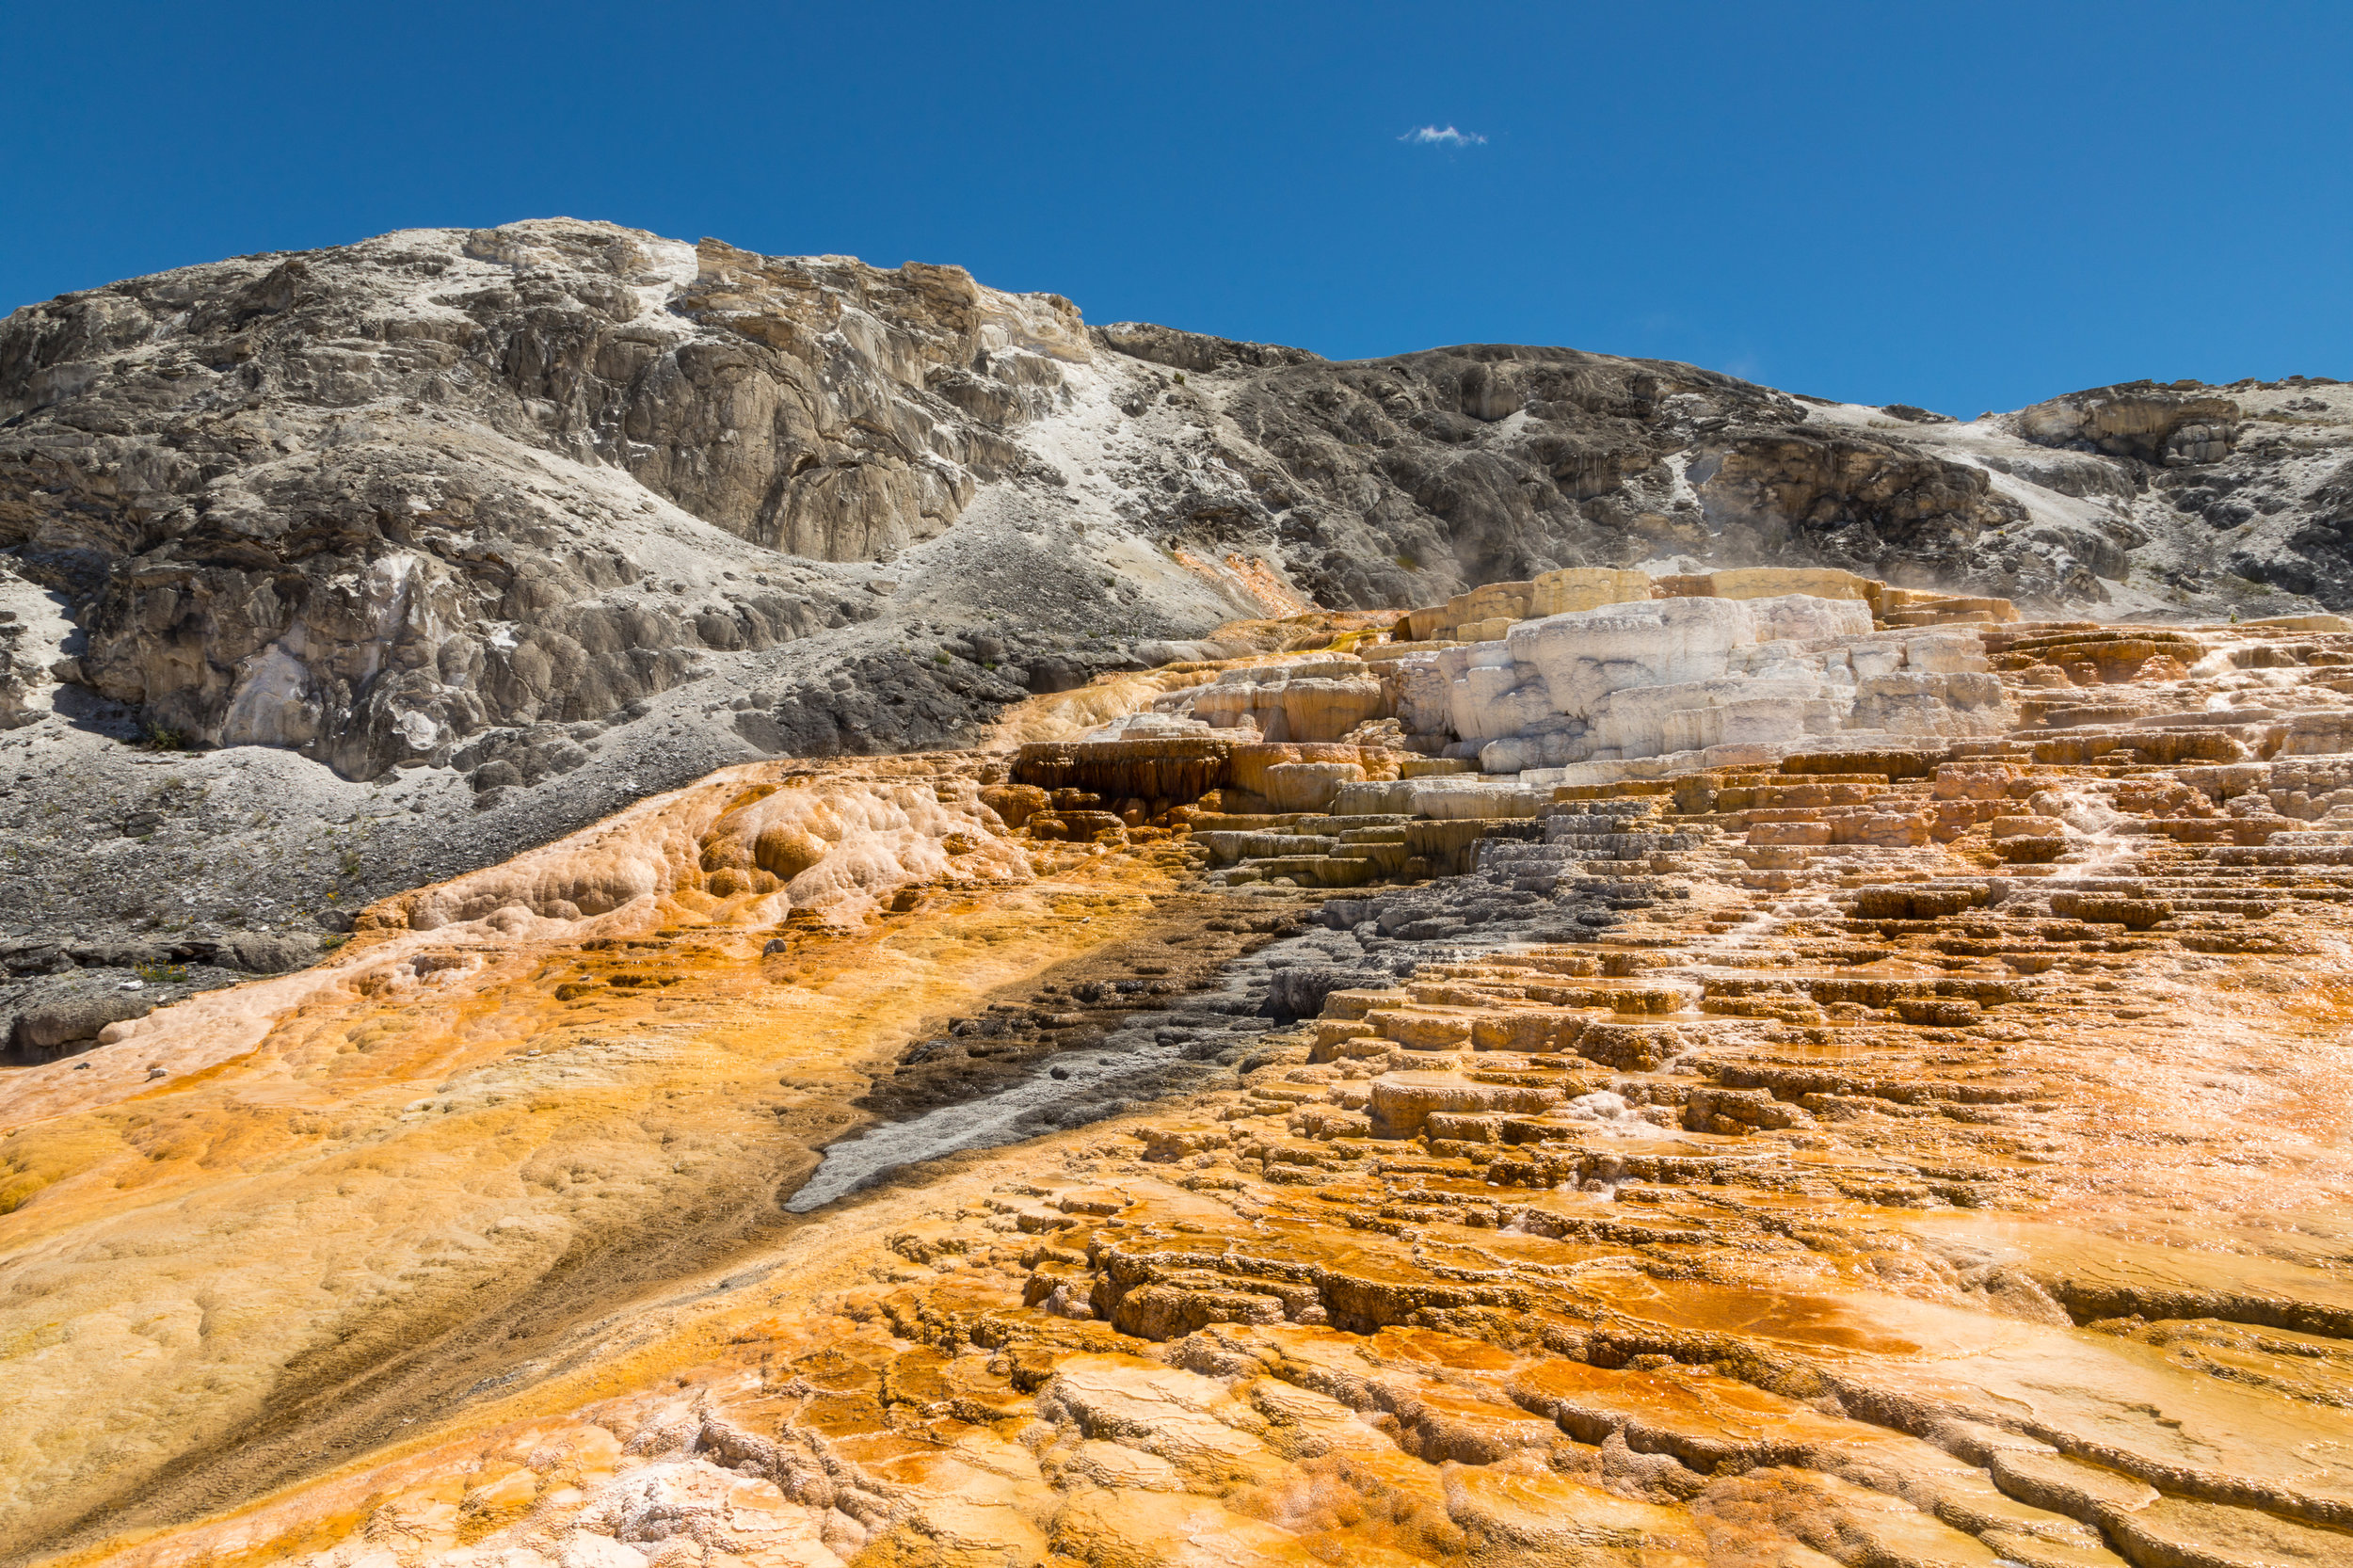 Mammoth Hot Springs, Yellowstone National Park, Image # 7306